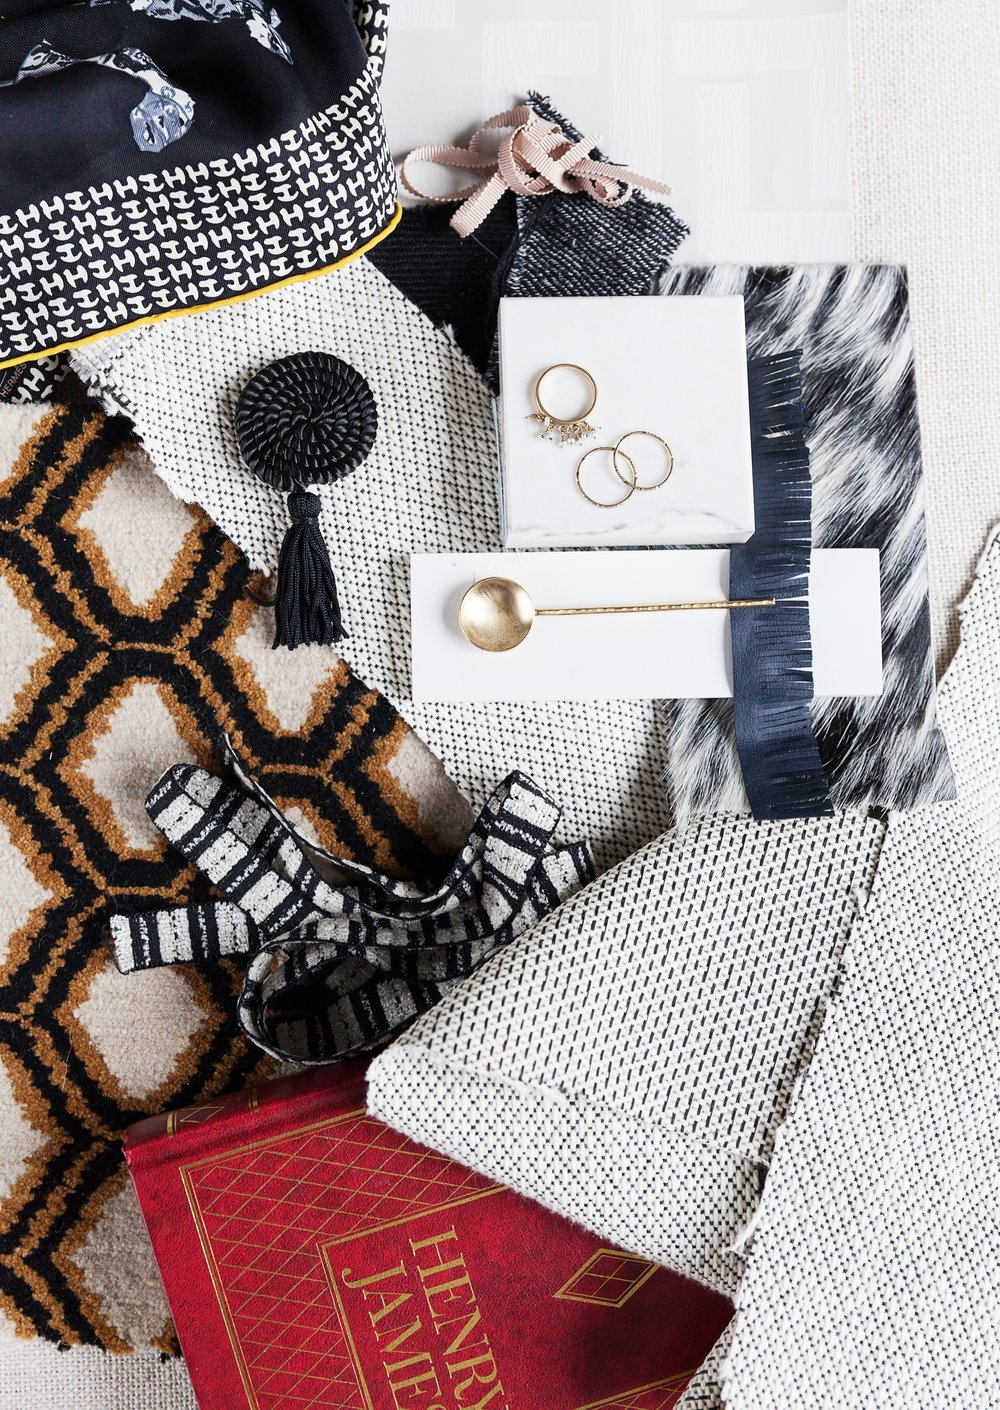 all in the details - With the same approach to styling in the closet as in the home, Scarlet creates spaces that are equal parts luxe and liveable, building unexpected and beautiful personalized interiors from top to bottom.